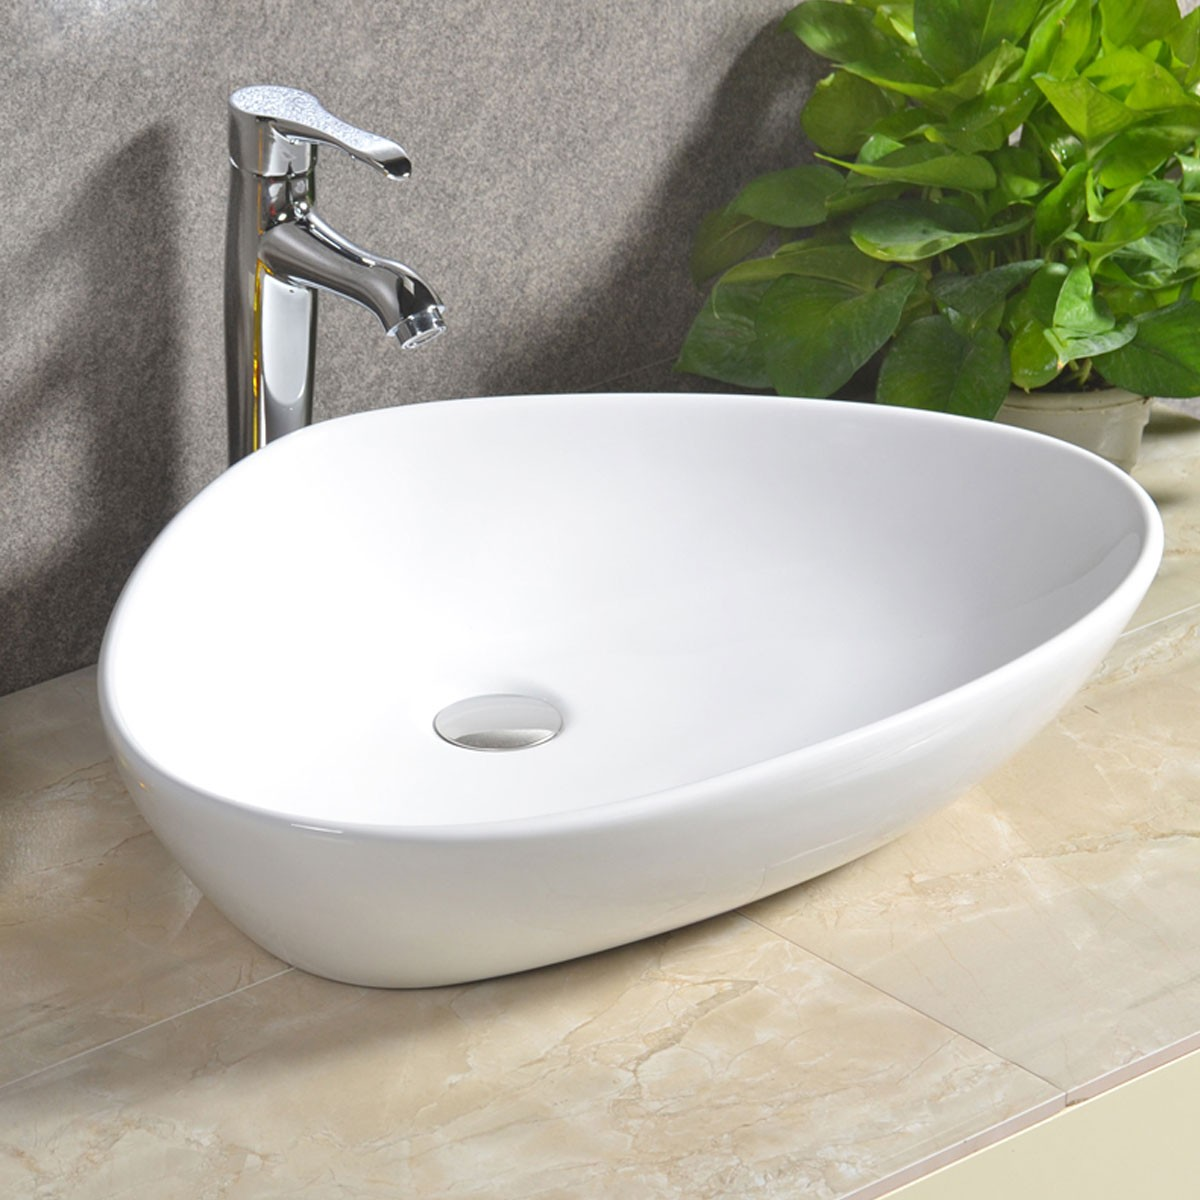 Decoraport White Triangular Ceramic Above Counter Basin (CL-1068)